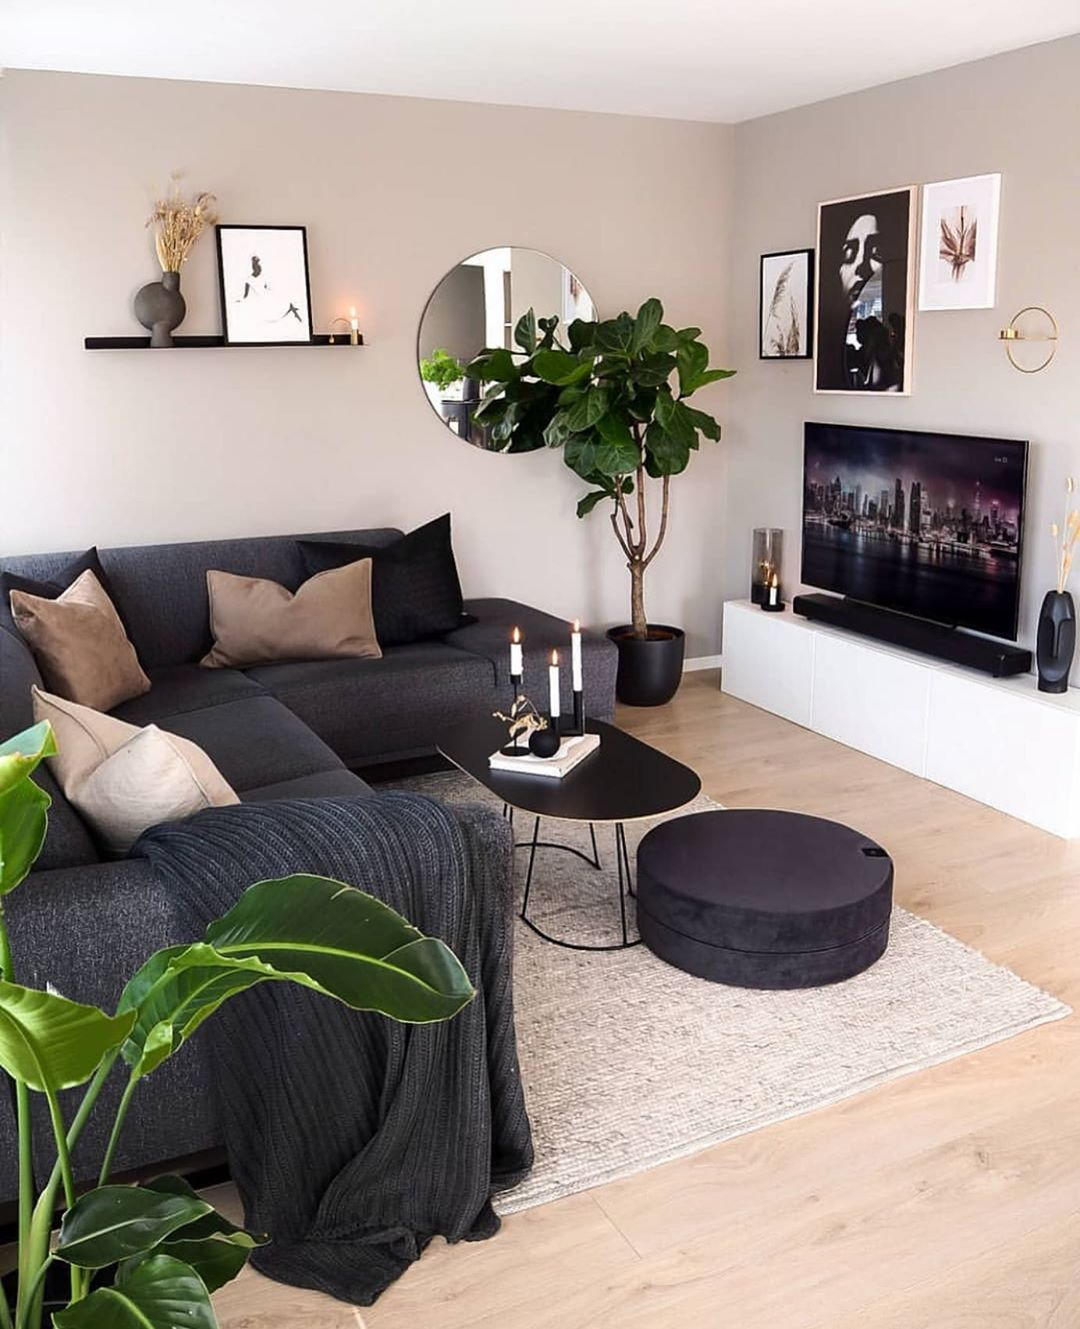 50 Lovely Living Room Design Ideas for 2020 - Do It Before Me on Small Living Room Decor Ideas  id=65162